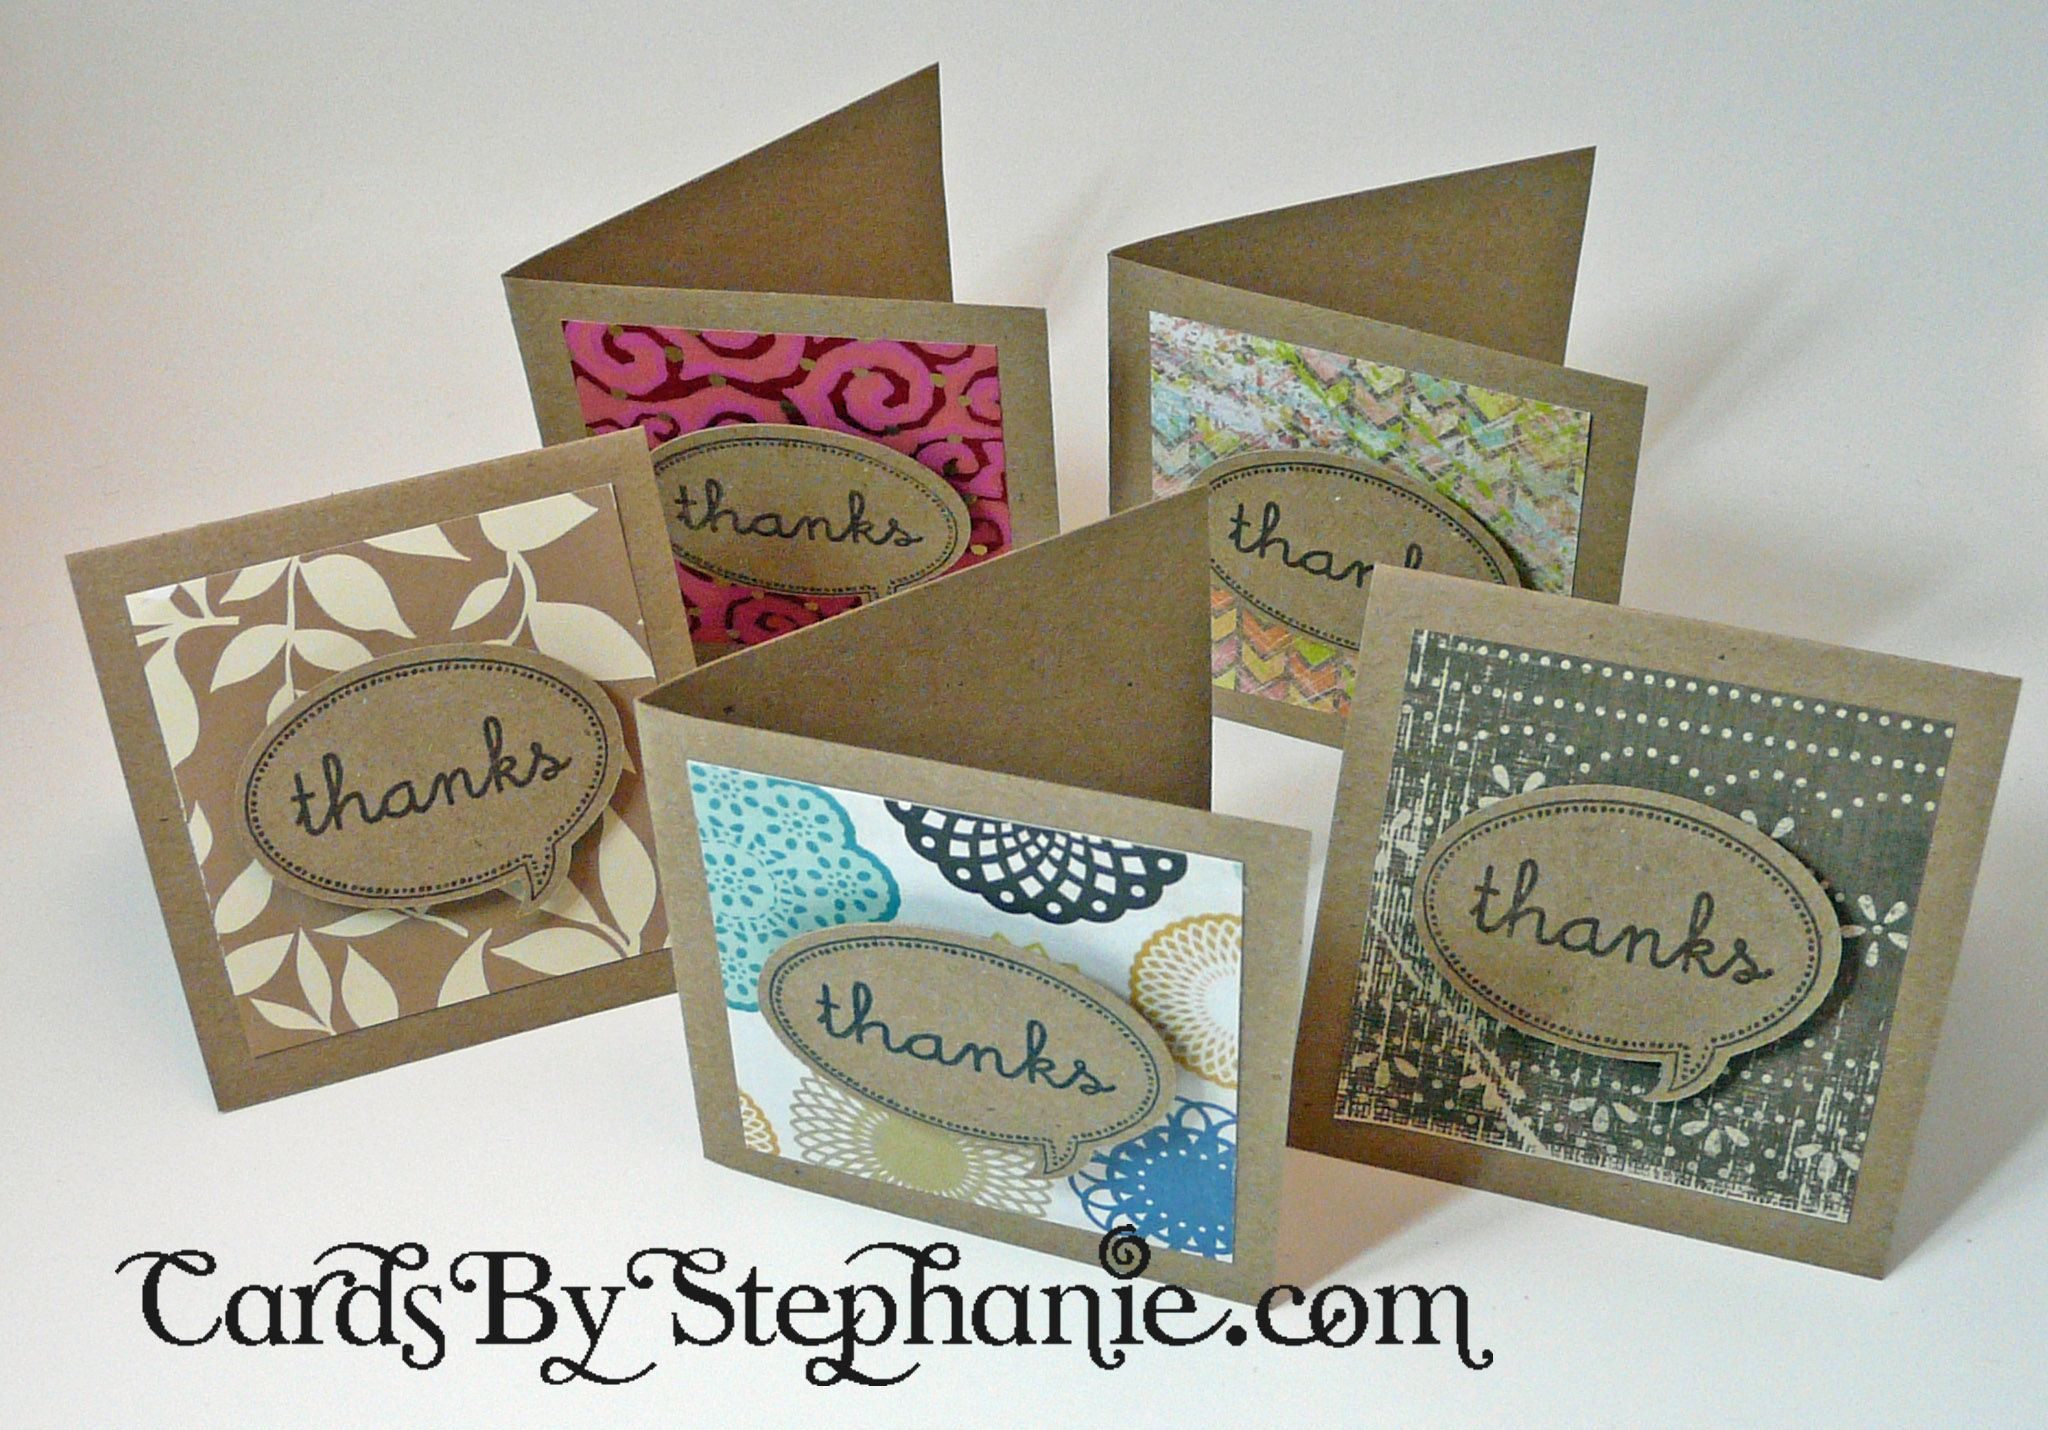 Make a bundle of 3 x 3 cards using scraps of paper you already make a bundle of 3 x 3 cards using scraps of paper you already kristyandbryce Gallery